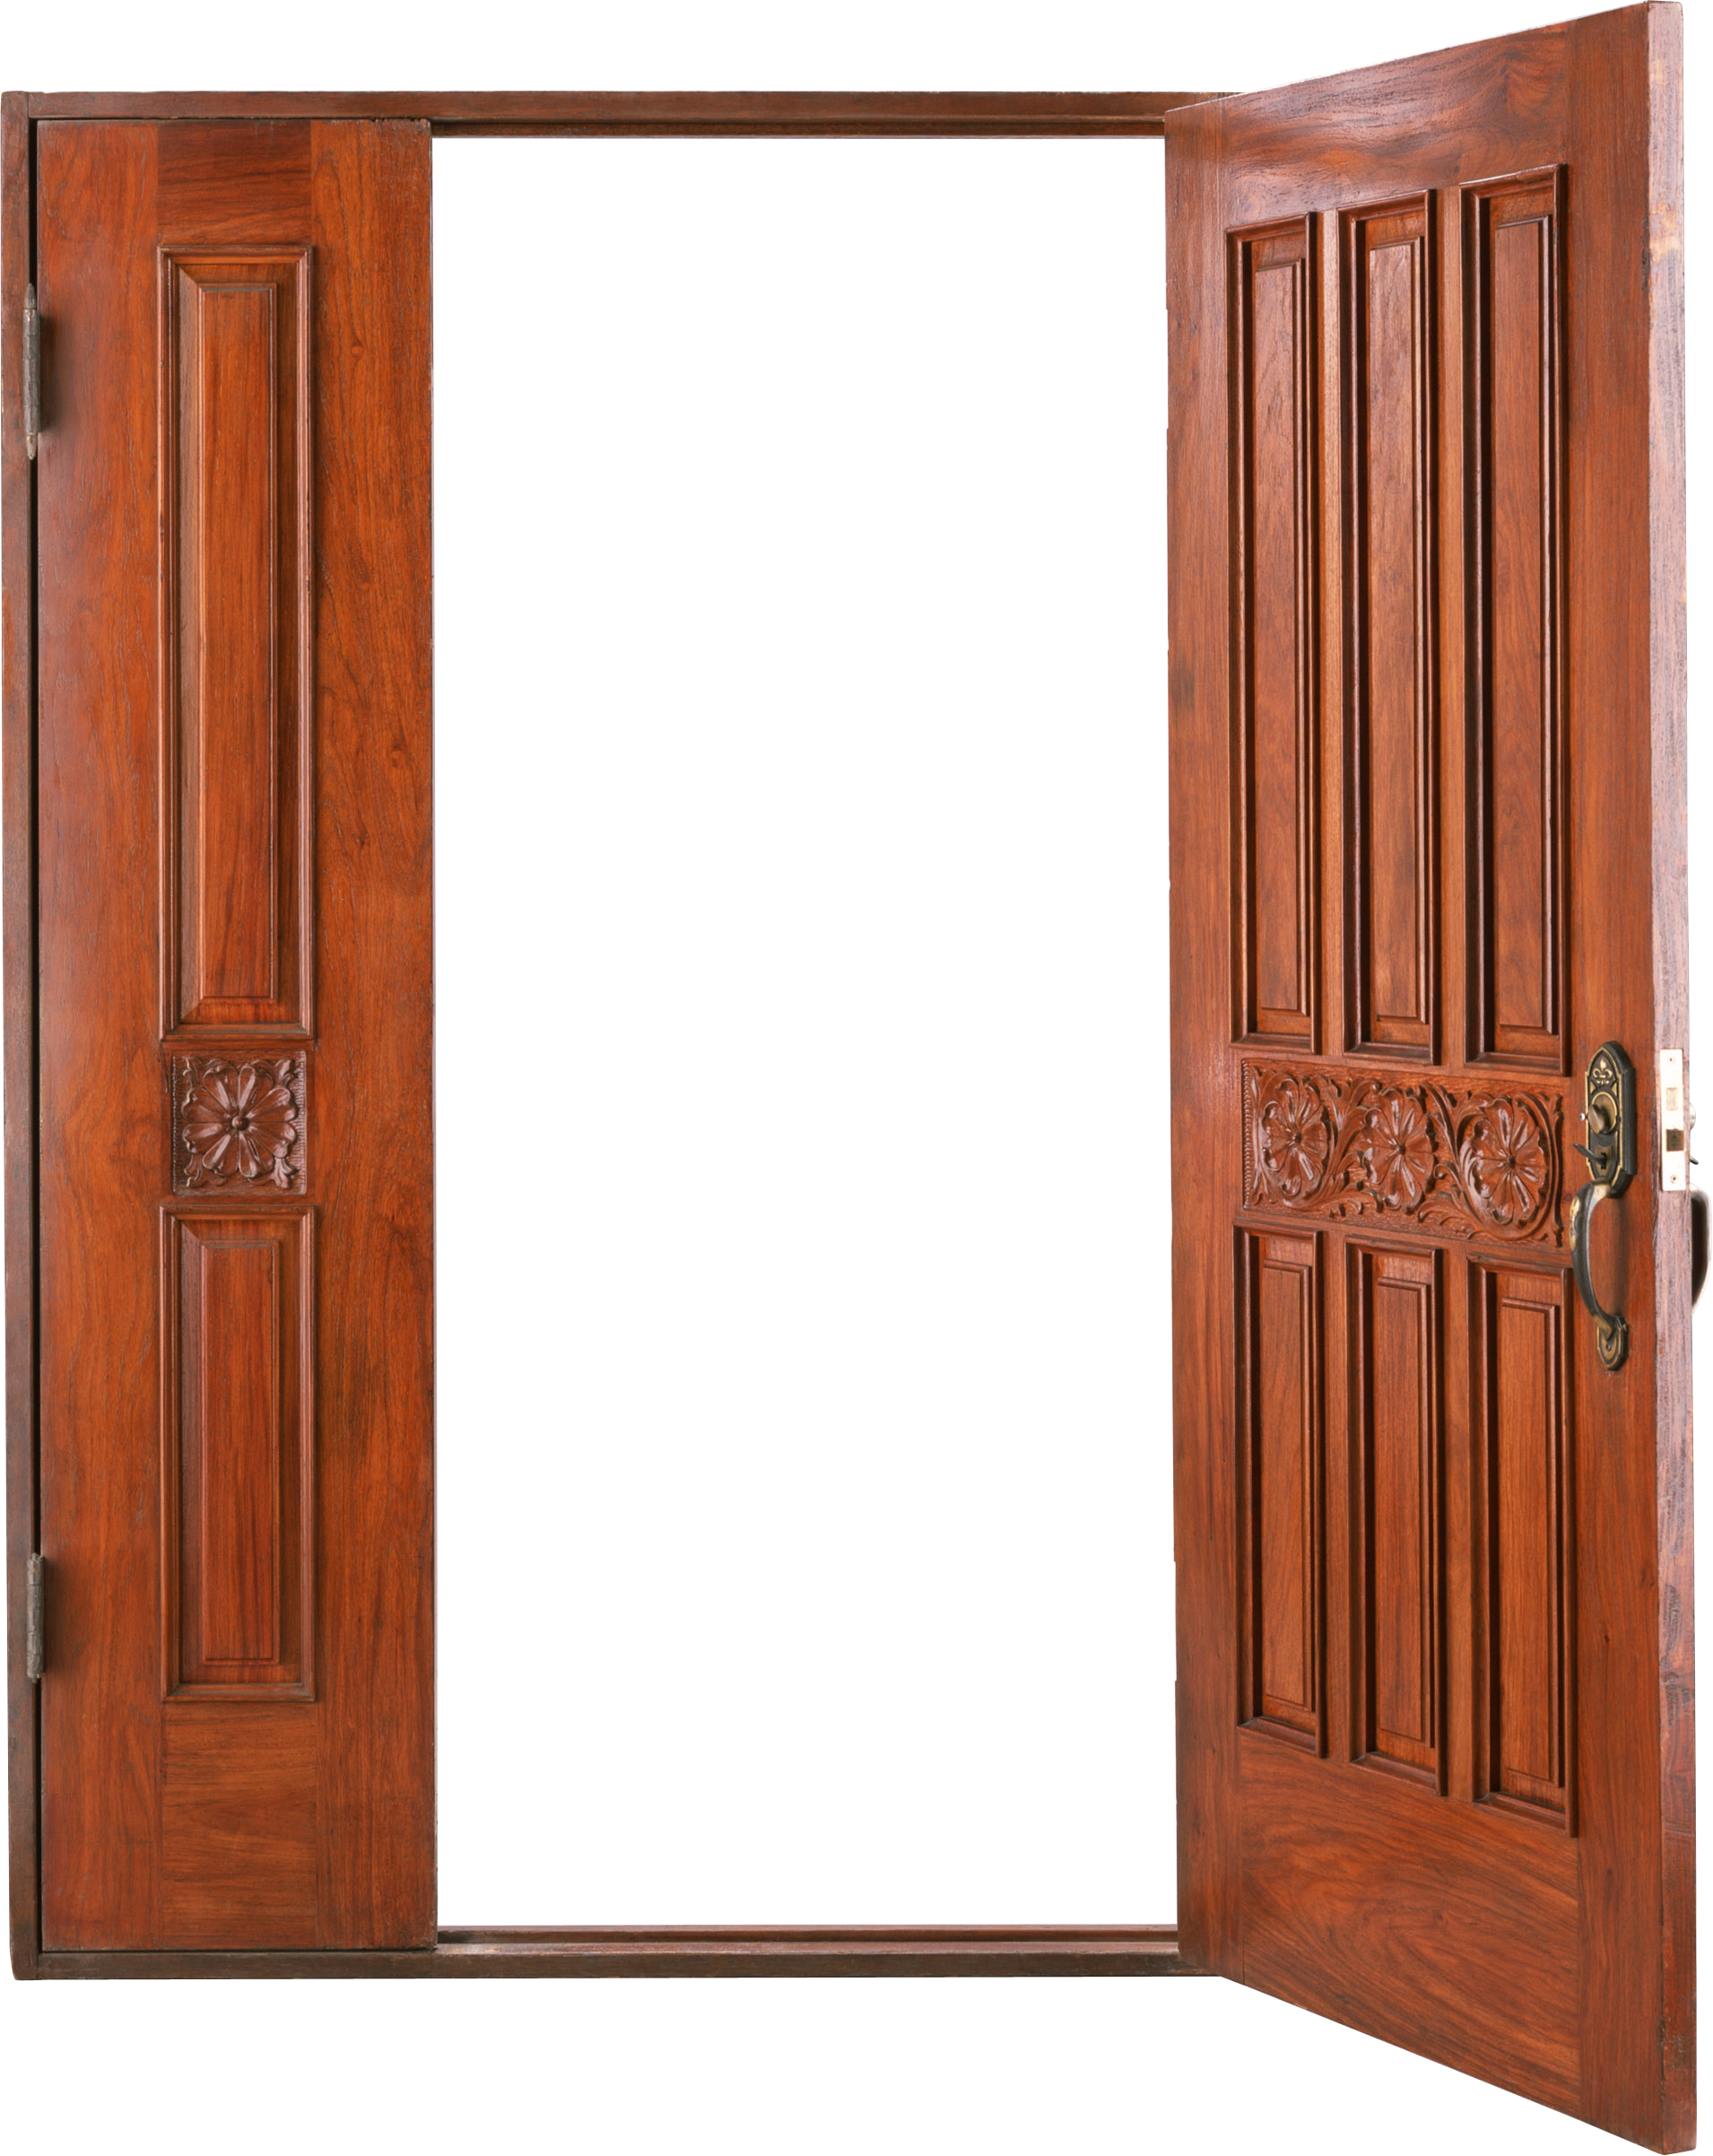 Download this high resolution Door High Quality PNG